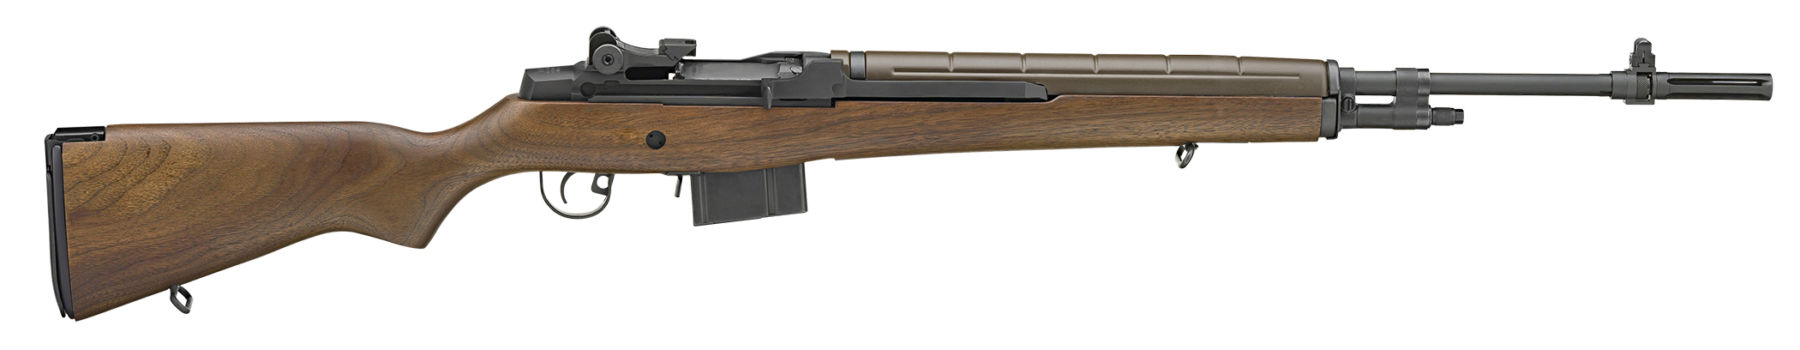 Springfield M1A Loaded .308